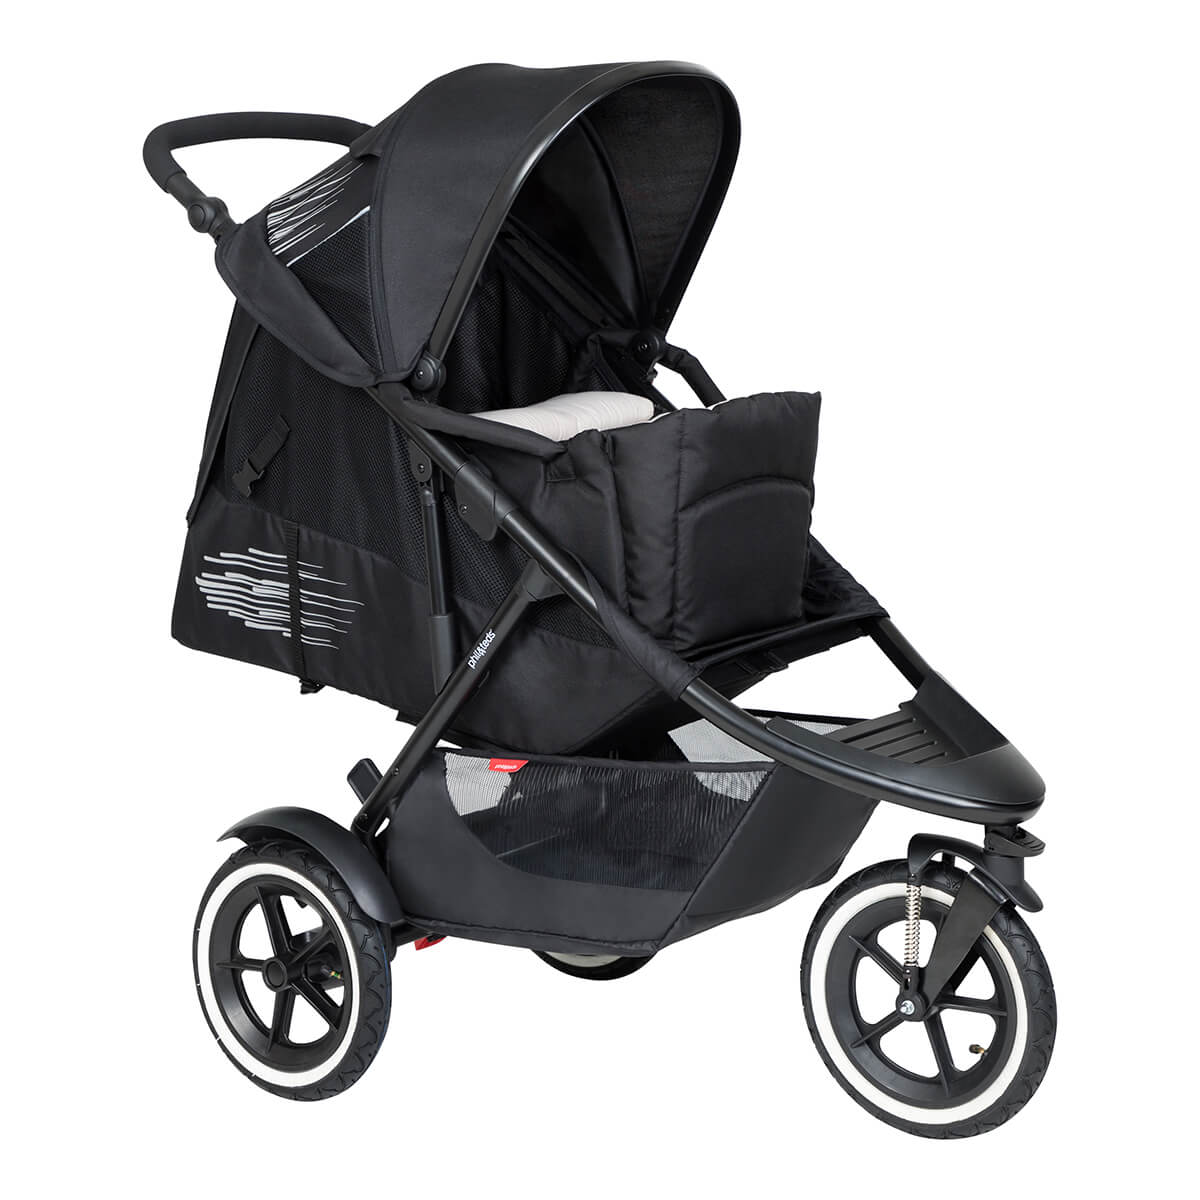 https://cdn.accentuate.io/4509527113816/19272668119128/philteds-sport-buggy-with-cocoon-full-recline-v1626484326076.jpg?1200x1200